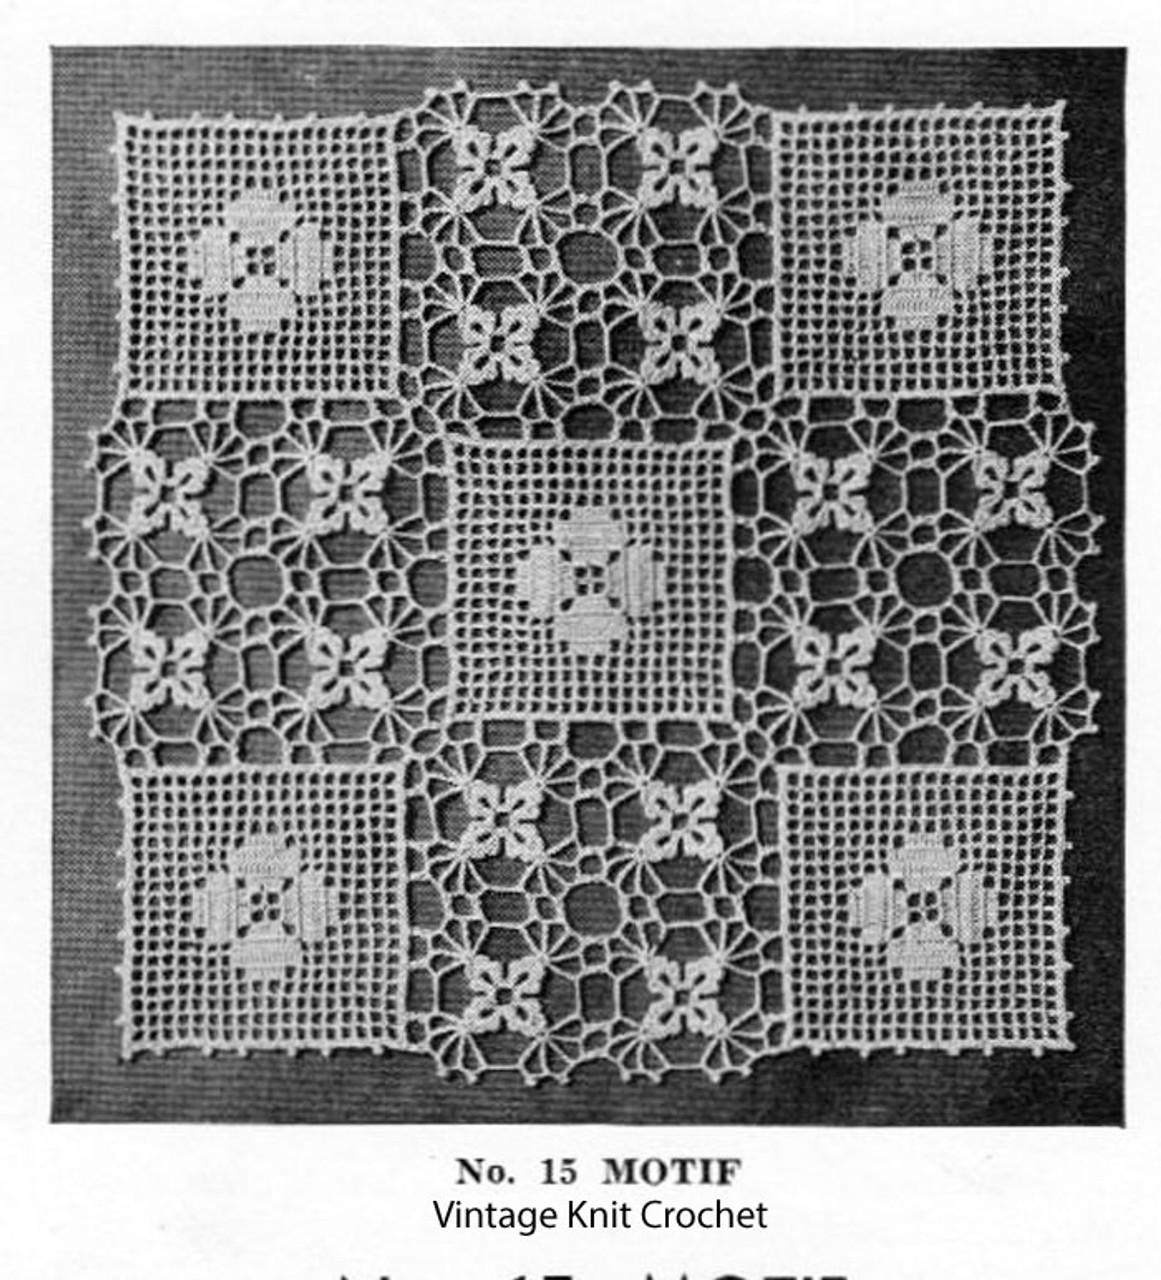 Crochet Clover Lace Square Pattern for Bedspread